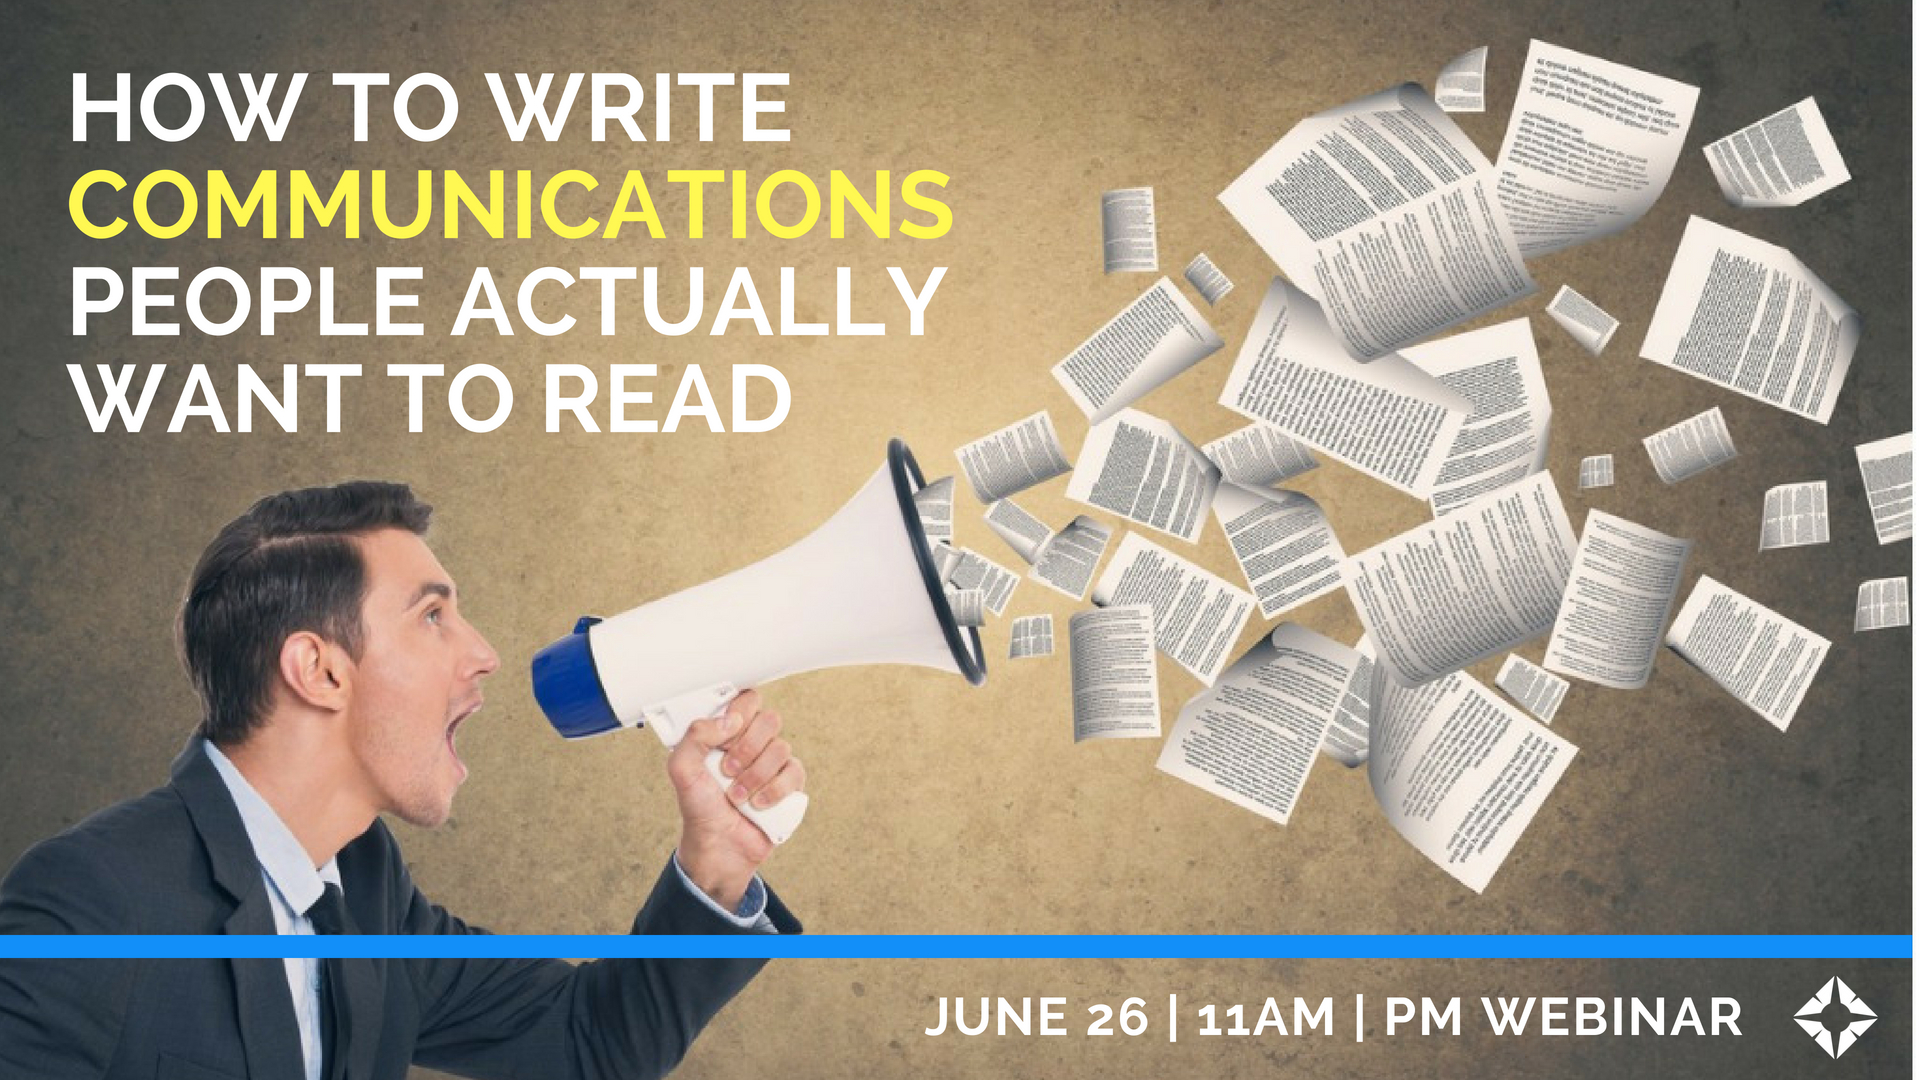 How to Write Communications People Actually Want to Read